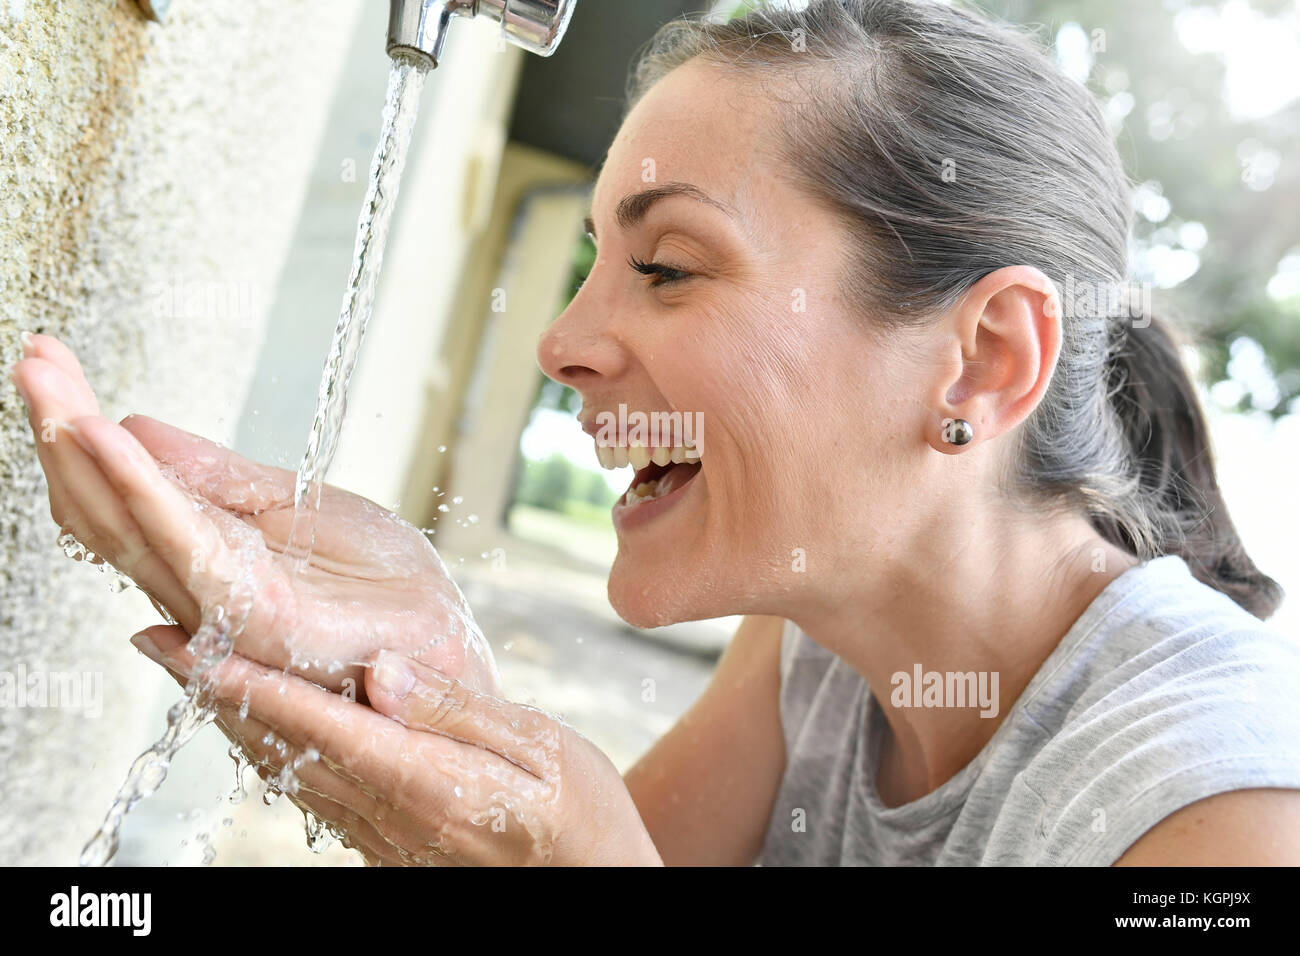 Portrait of cheerful girl drinking water from faucet - Stock Image